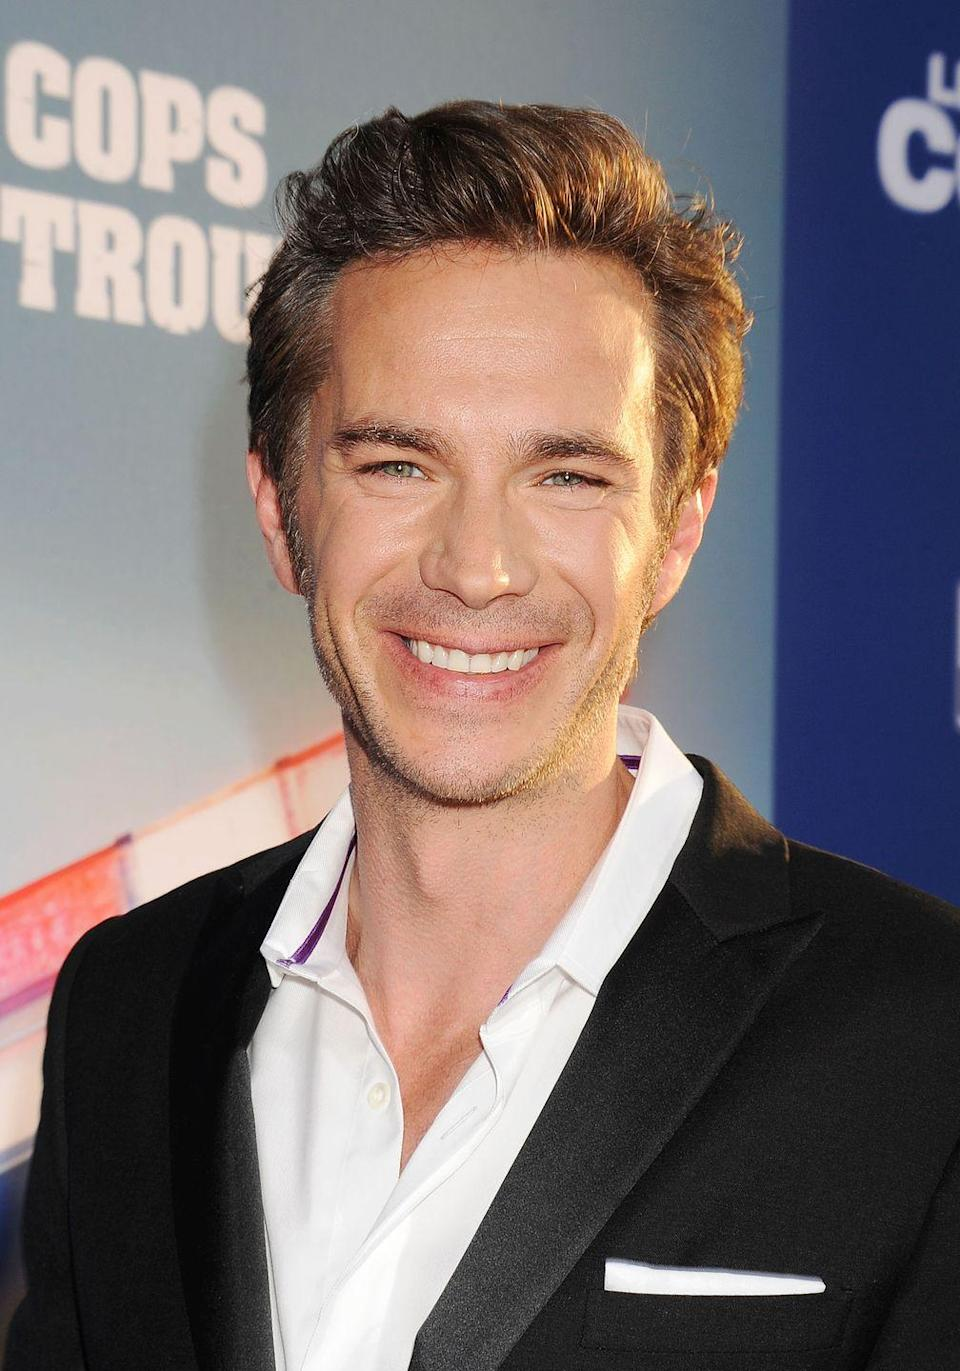 """<p>You've probably seen him in <em>Dunkirk</em> or <em>Homeland</em>, but long before he was a successful actor, James D'Arcy worked at McDonald's. His experience was actually pretty scary. Someone pulled a gun on him while he was working the register one night, he told <a href=""""https://metro.co.uk/2012/01/18/james-darcy-someone-pointed-a-gun-at-me-when-i-worked-at-mcdonalds-288919/"""" rel=""""nofollow noopener"""" target=""""_blank"""" data-ylk=""""slk:Metro"""" class=""""link rapid-noclick-resp""""><em>Metro</em></a>. He stopped working there shortly afterwards.</p>"""